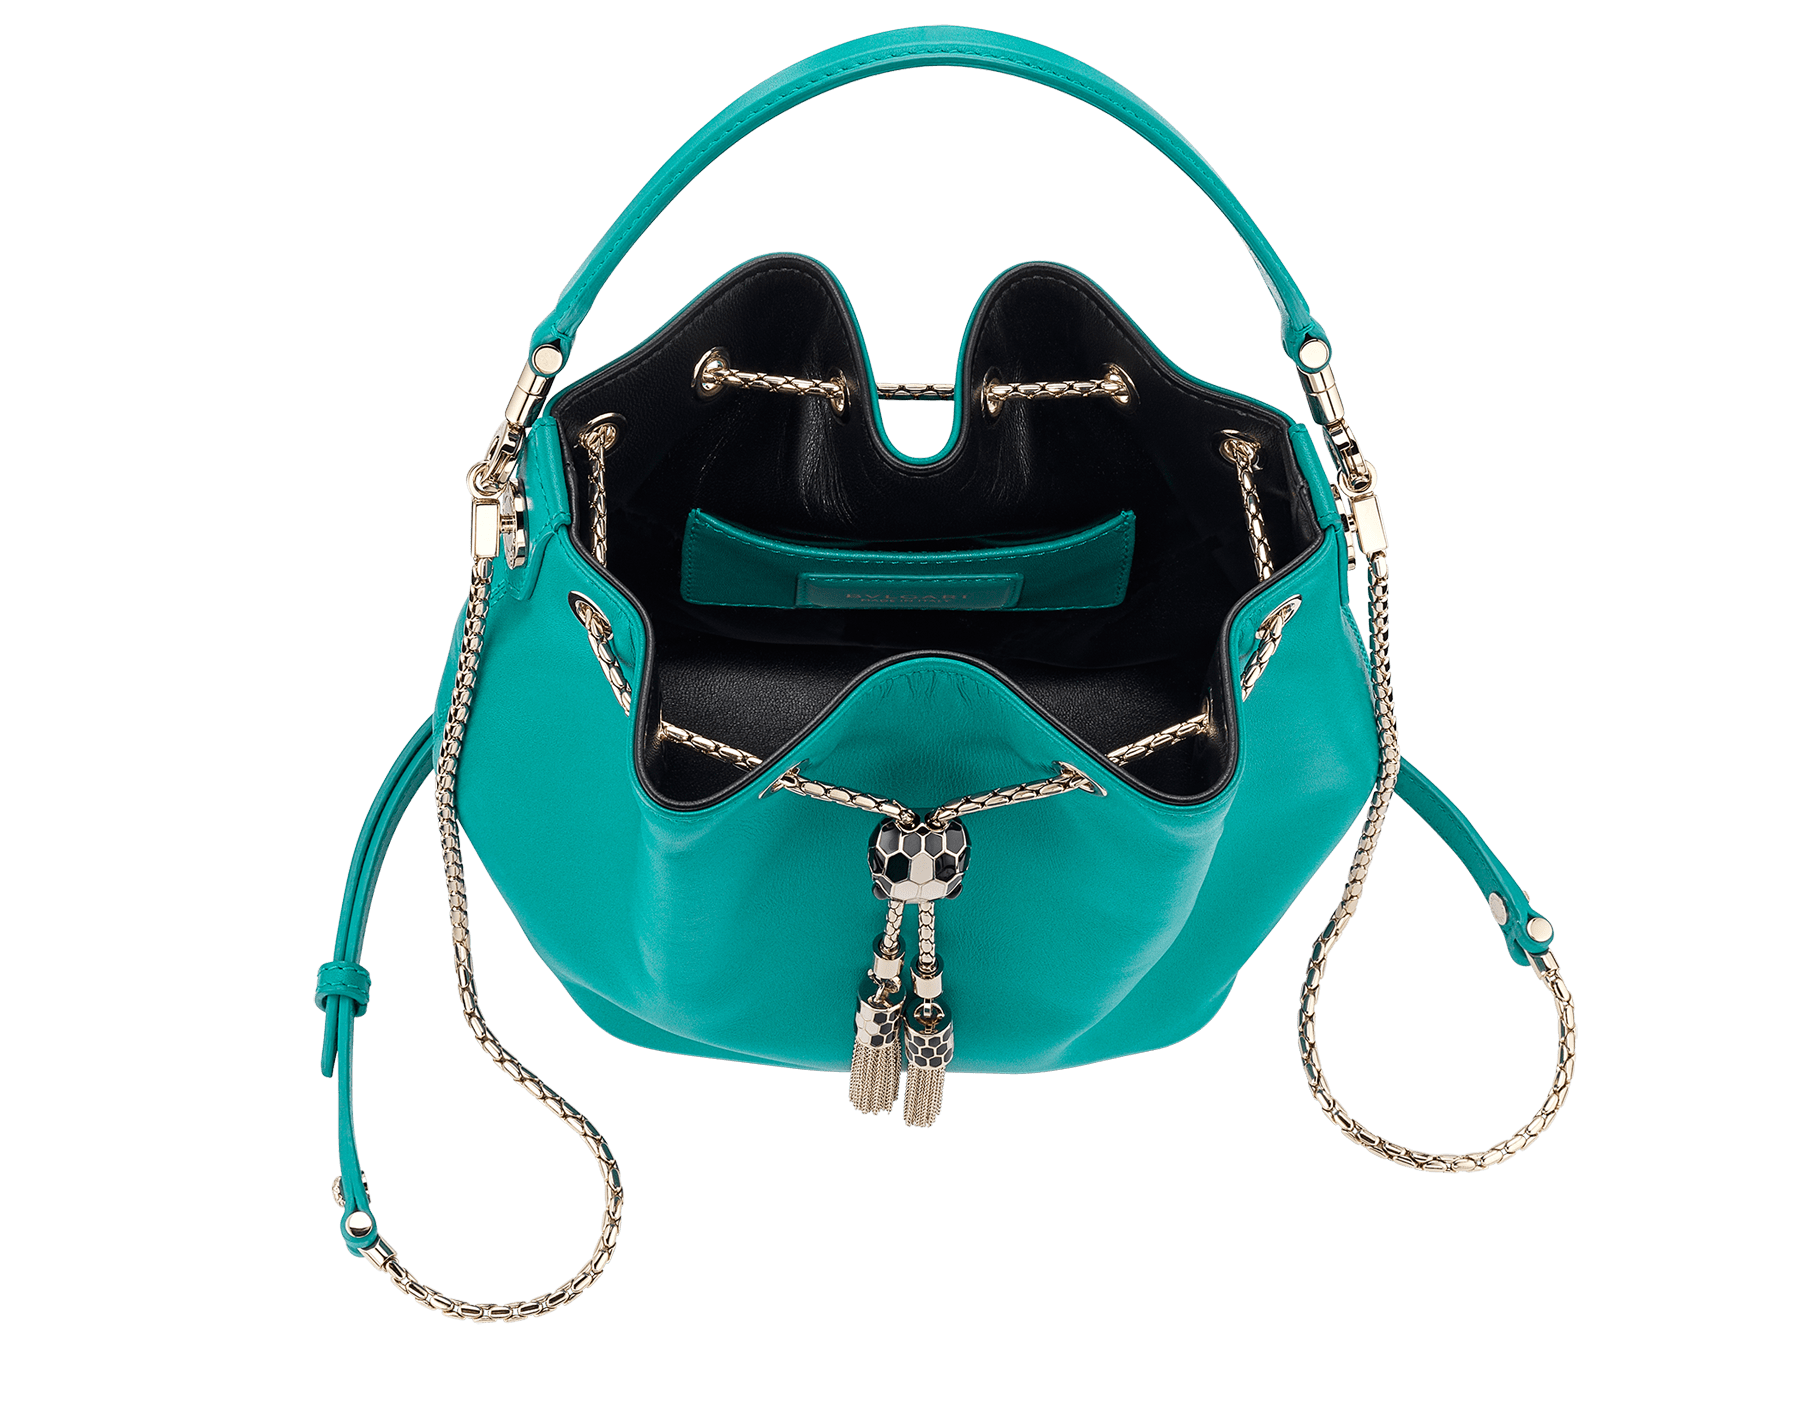 Serpenti Forever bucket bag in tropical turquoise smooth calf leather and black nappa inner lining. Snakehead closure in light gold plated brass decorated with black and white enamel, and black onyx eyes. 287981 image 4